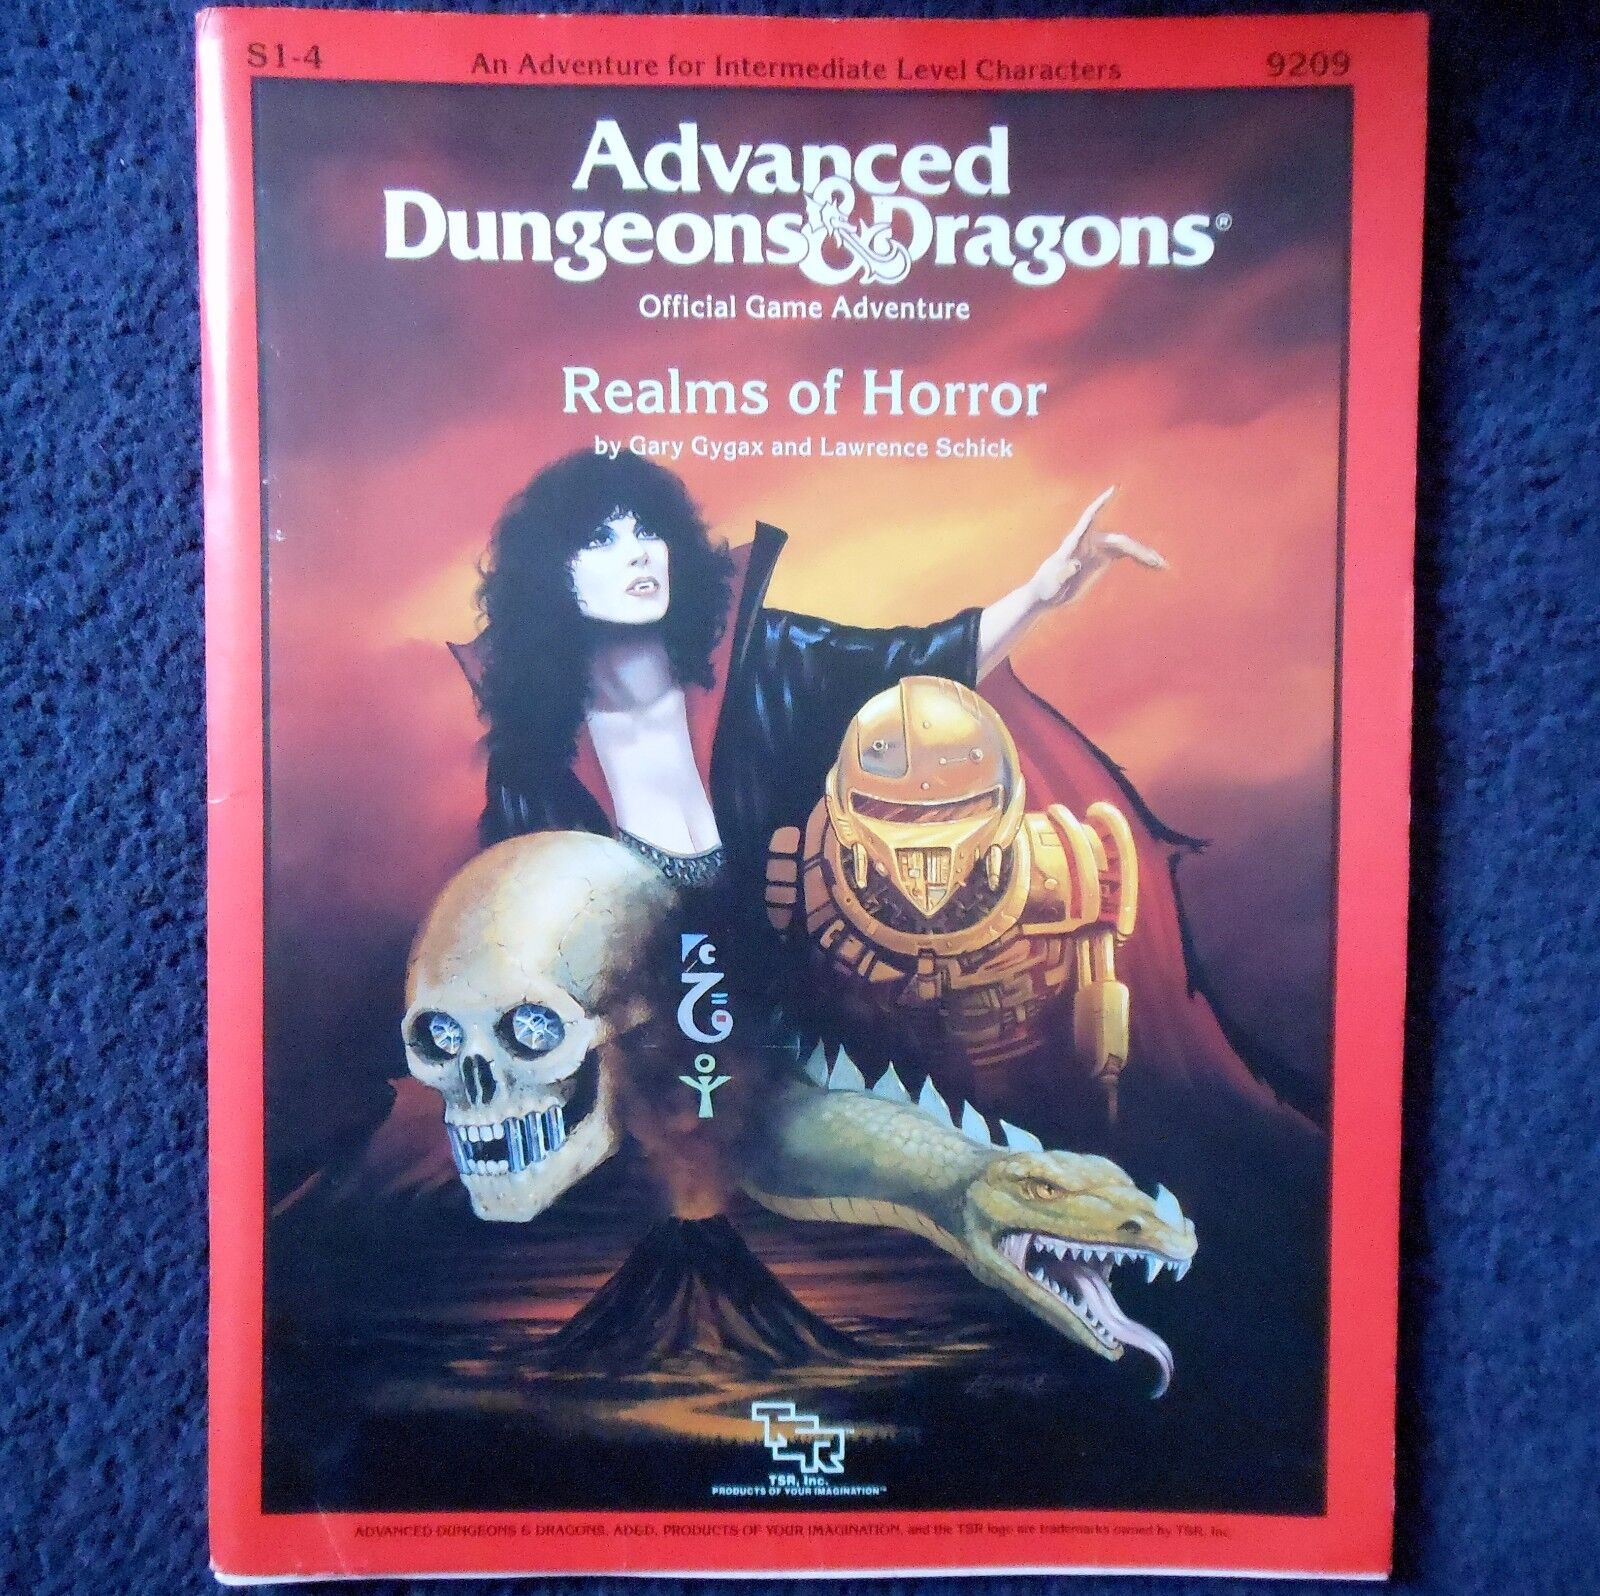 S1-4 Realms of Horror Advanced Dungeons & Dragons Adventure Module D&D TSR 9209